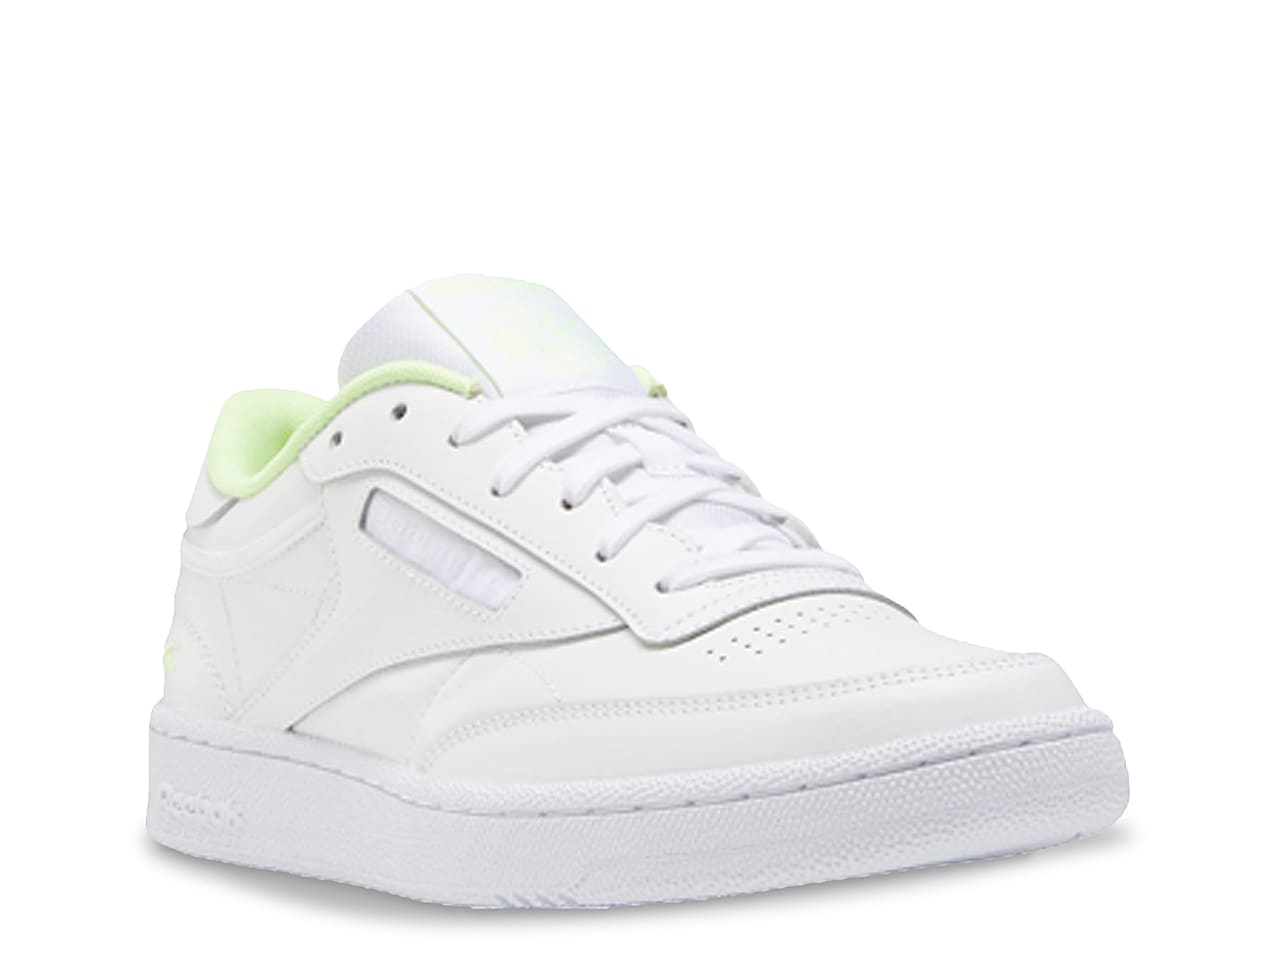 Club C 85 Sneaker - Men's